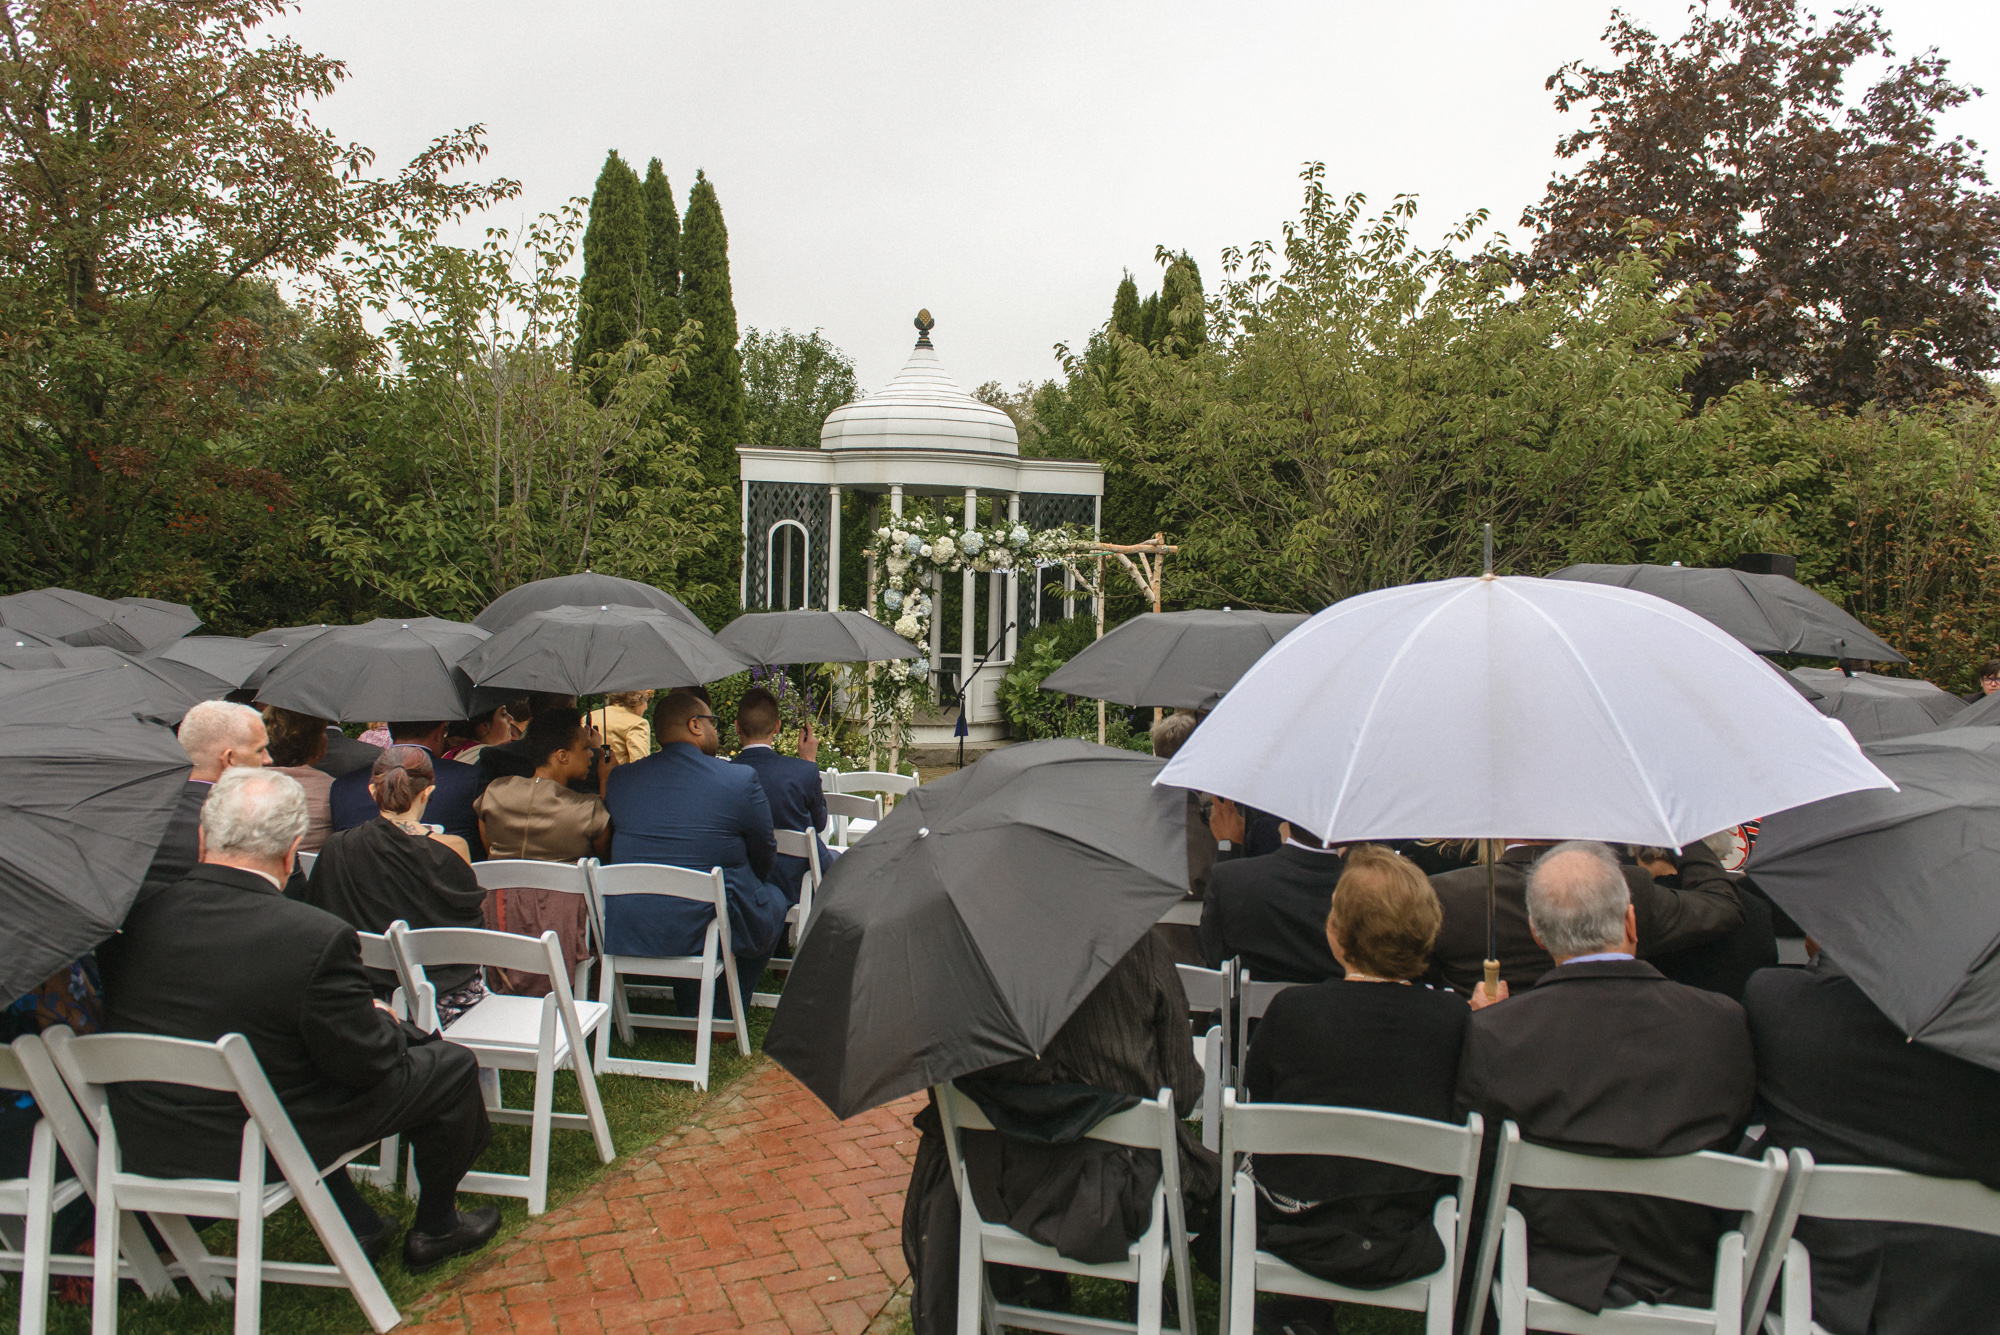 A bit of drizzle at this wedding ceremony at the Dr. Daniel Fisher House & Gardens photo by David Welch Photography